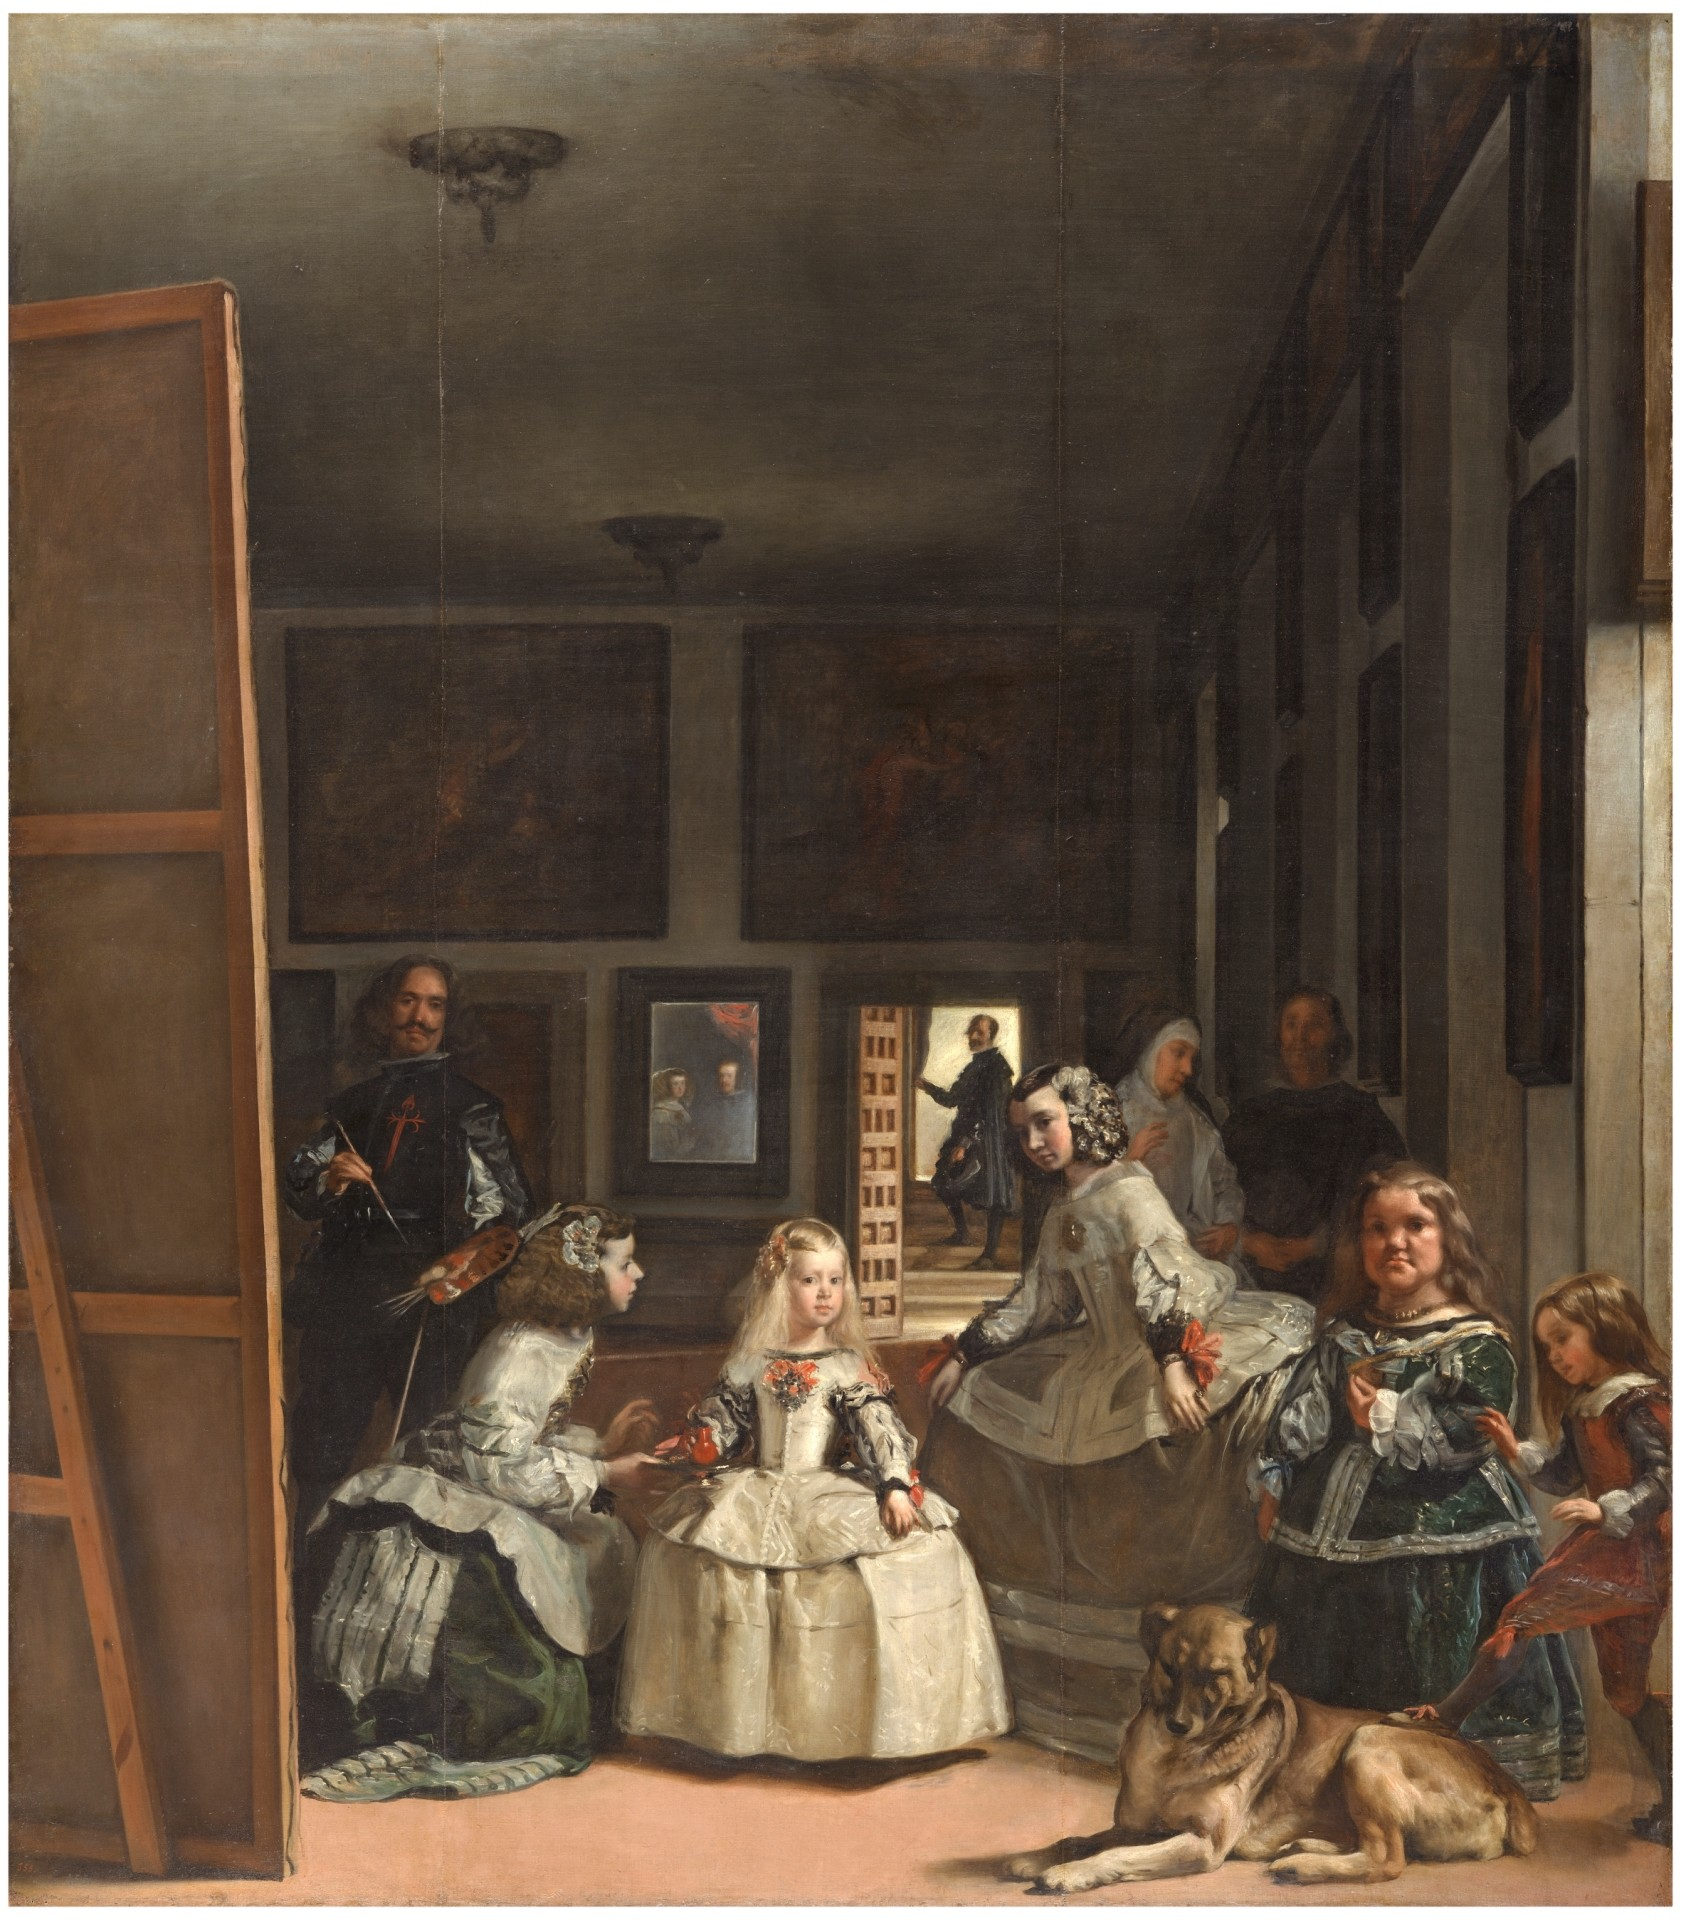 Las Meninas, painting by Diego Velazquez. La Infanta of Spain is being dressed by her companions.